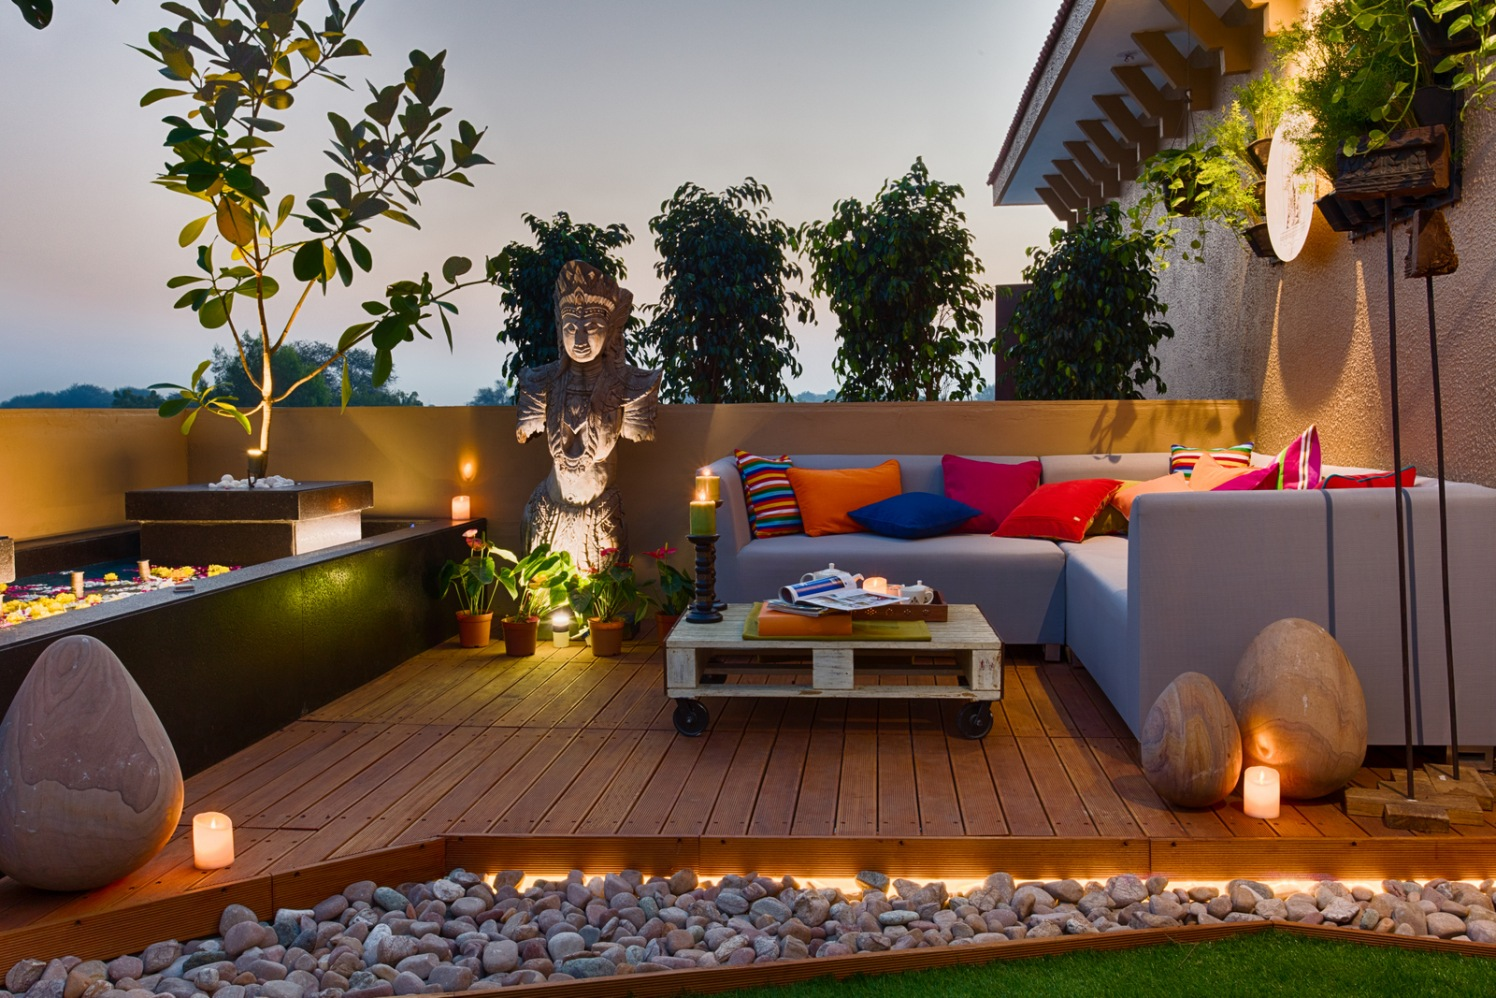 Cornflower Blue L-Shape Couch And Wooden Deck On Elegant Terrace by Dhaval Patel Open-spaces Contemporary   Interior Design Photos & Ideas